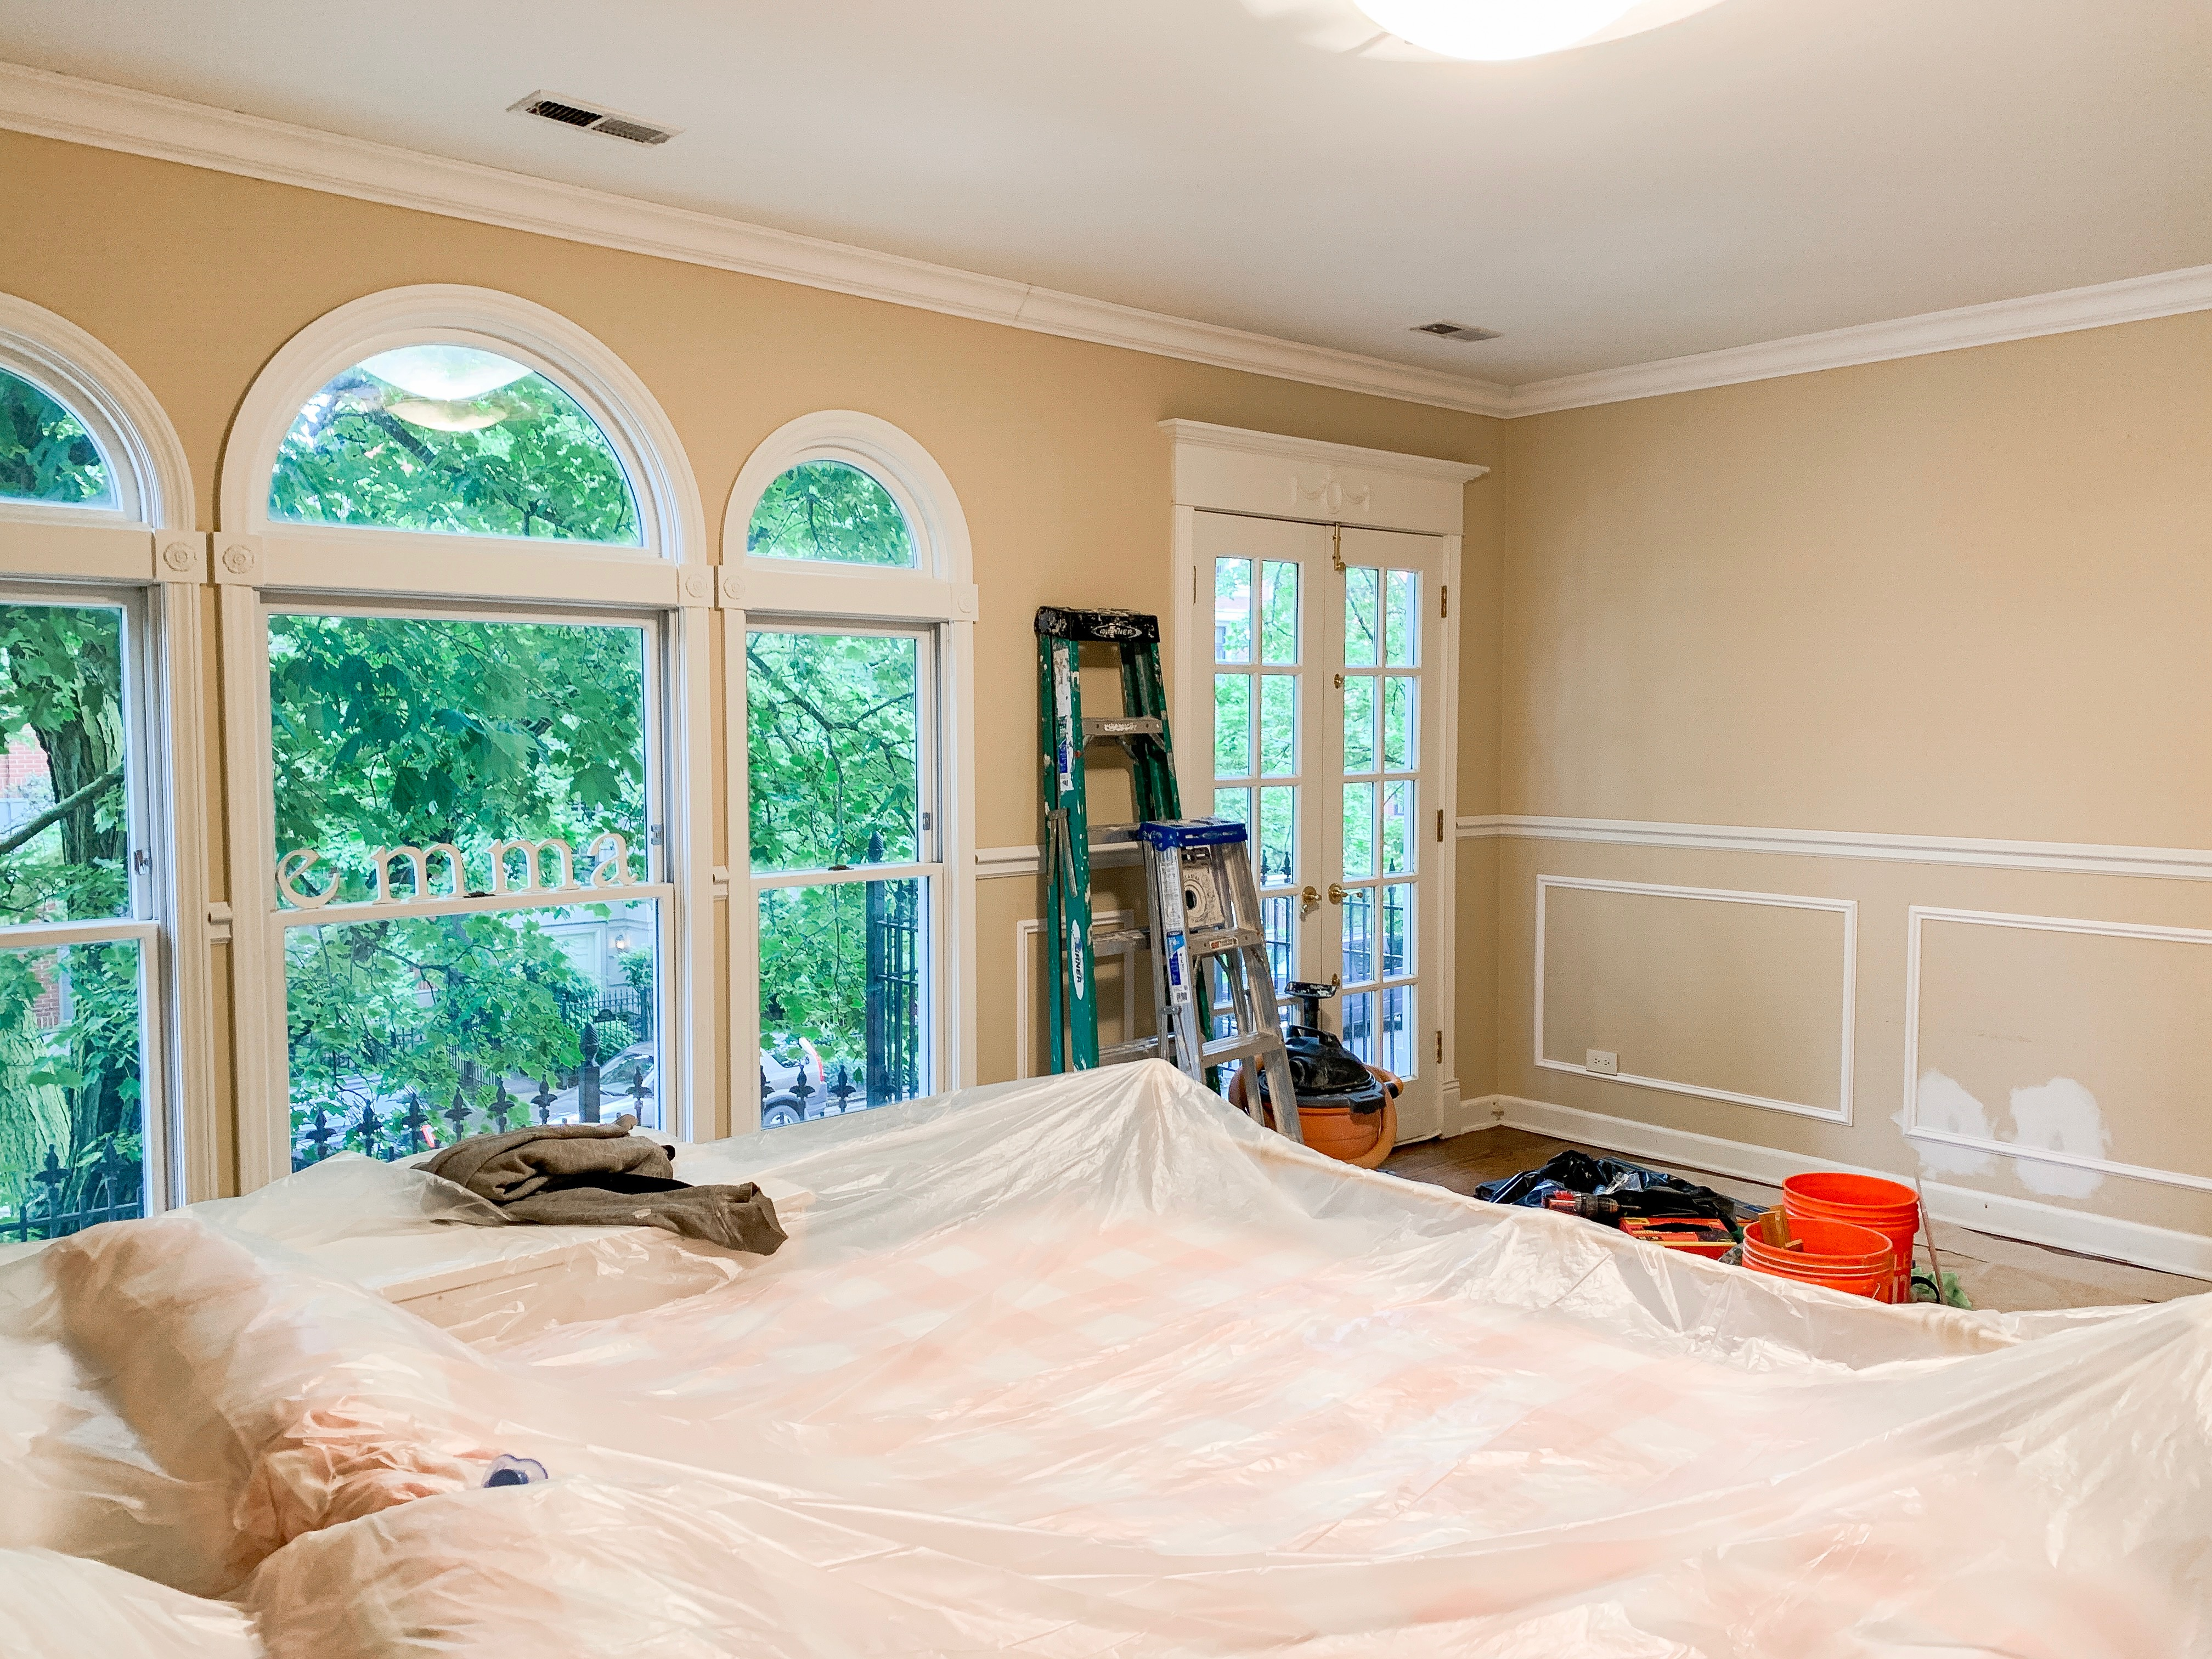 Installation: wainscoting, crown molding and hallway ceiling